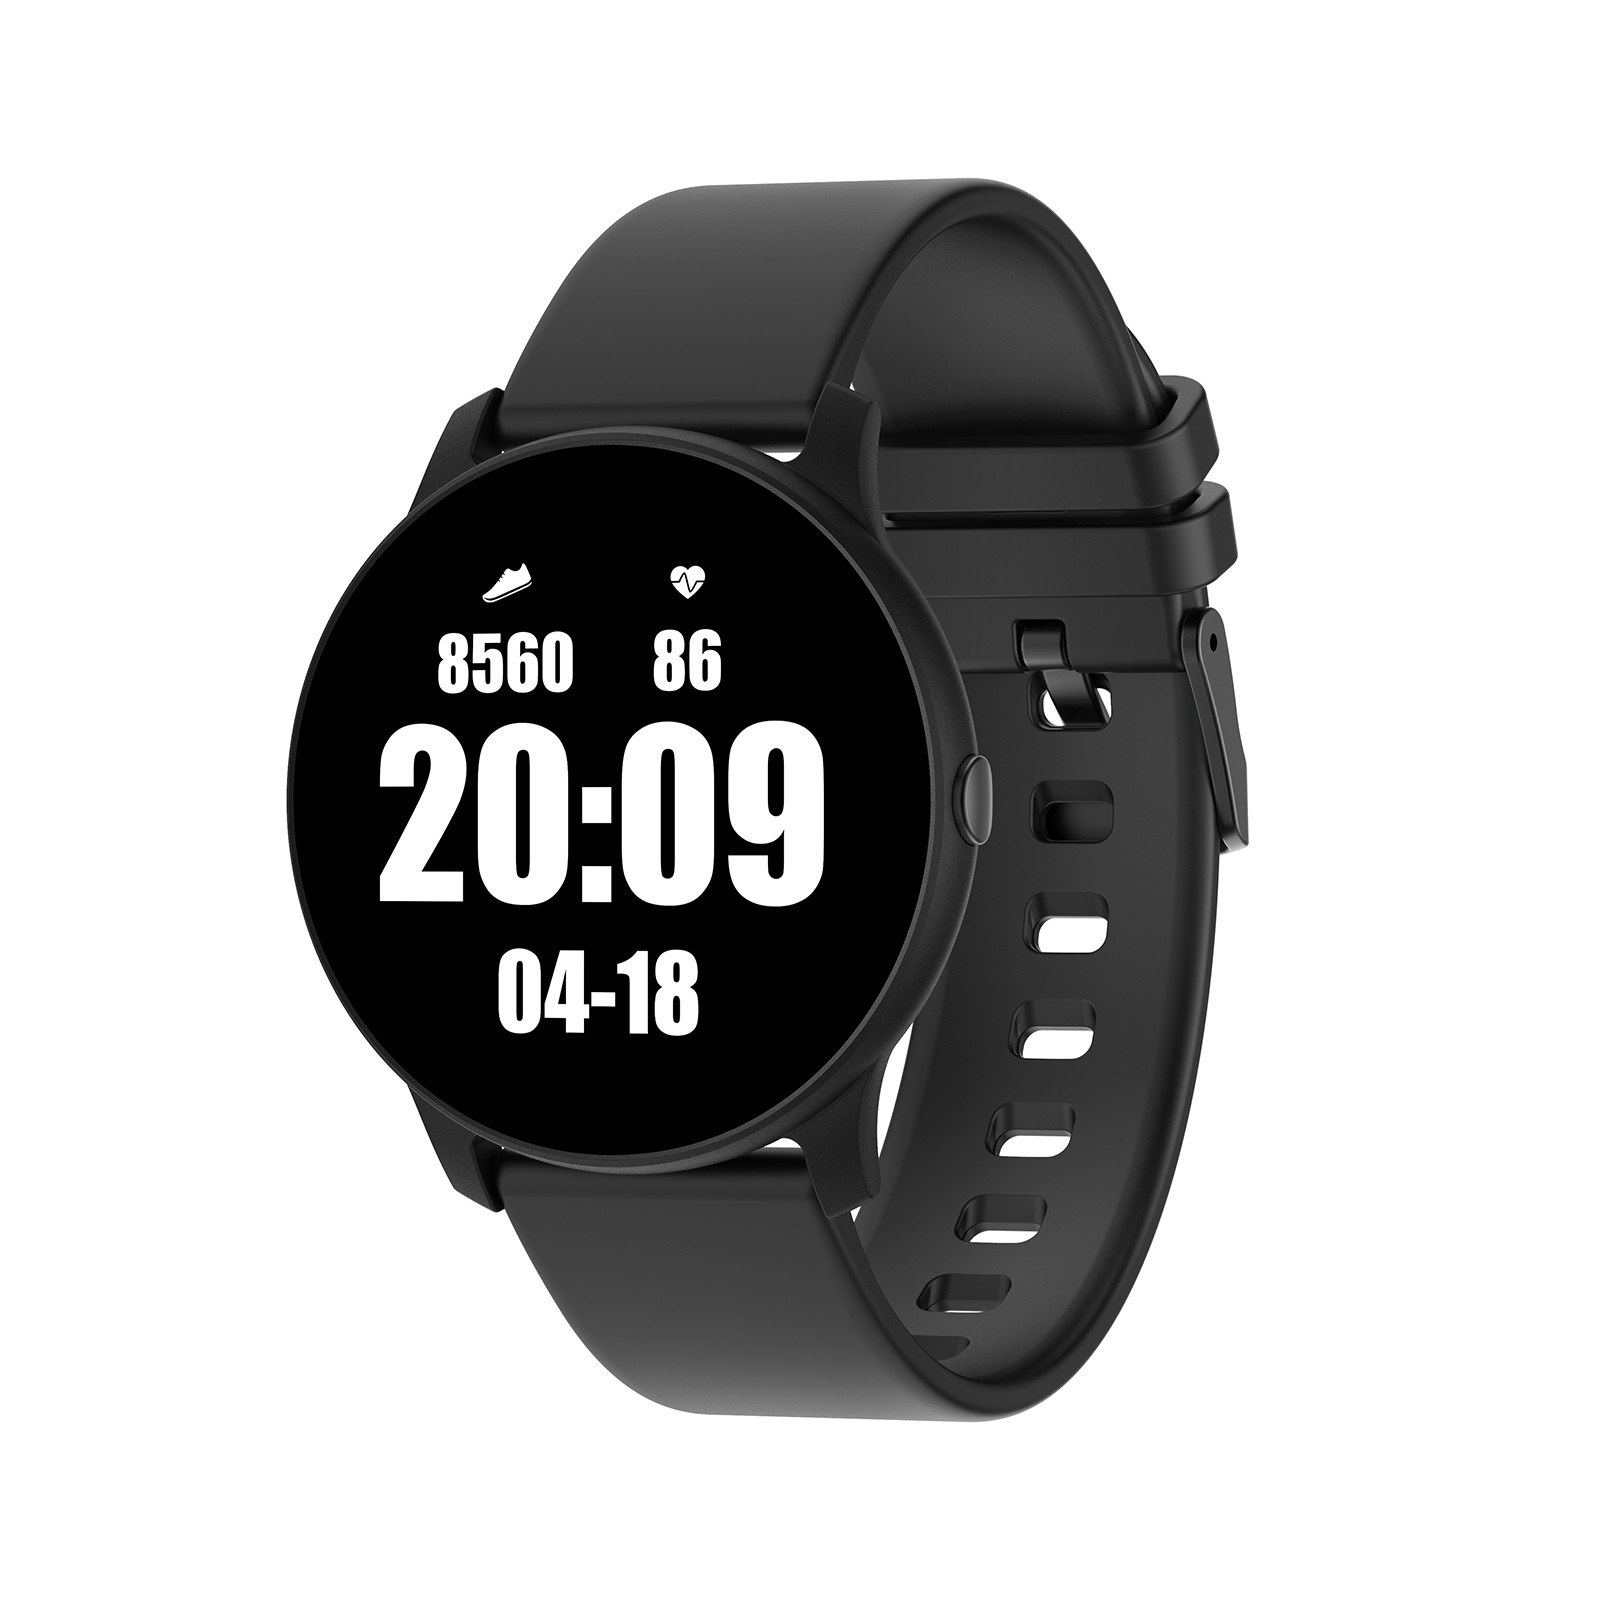 Tomtop - 63% OFF KW19 1.3-Inch TFT Single-Touch Screen Smart Sports Watch, Free Shipping $18.99